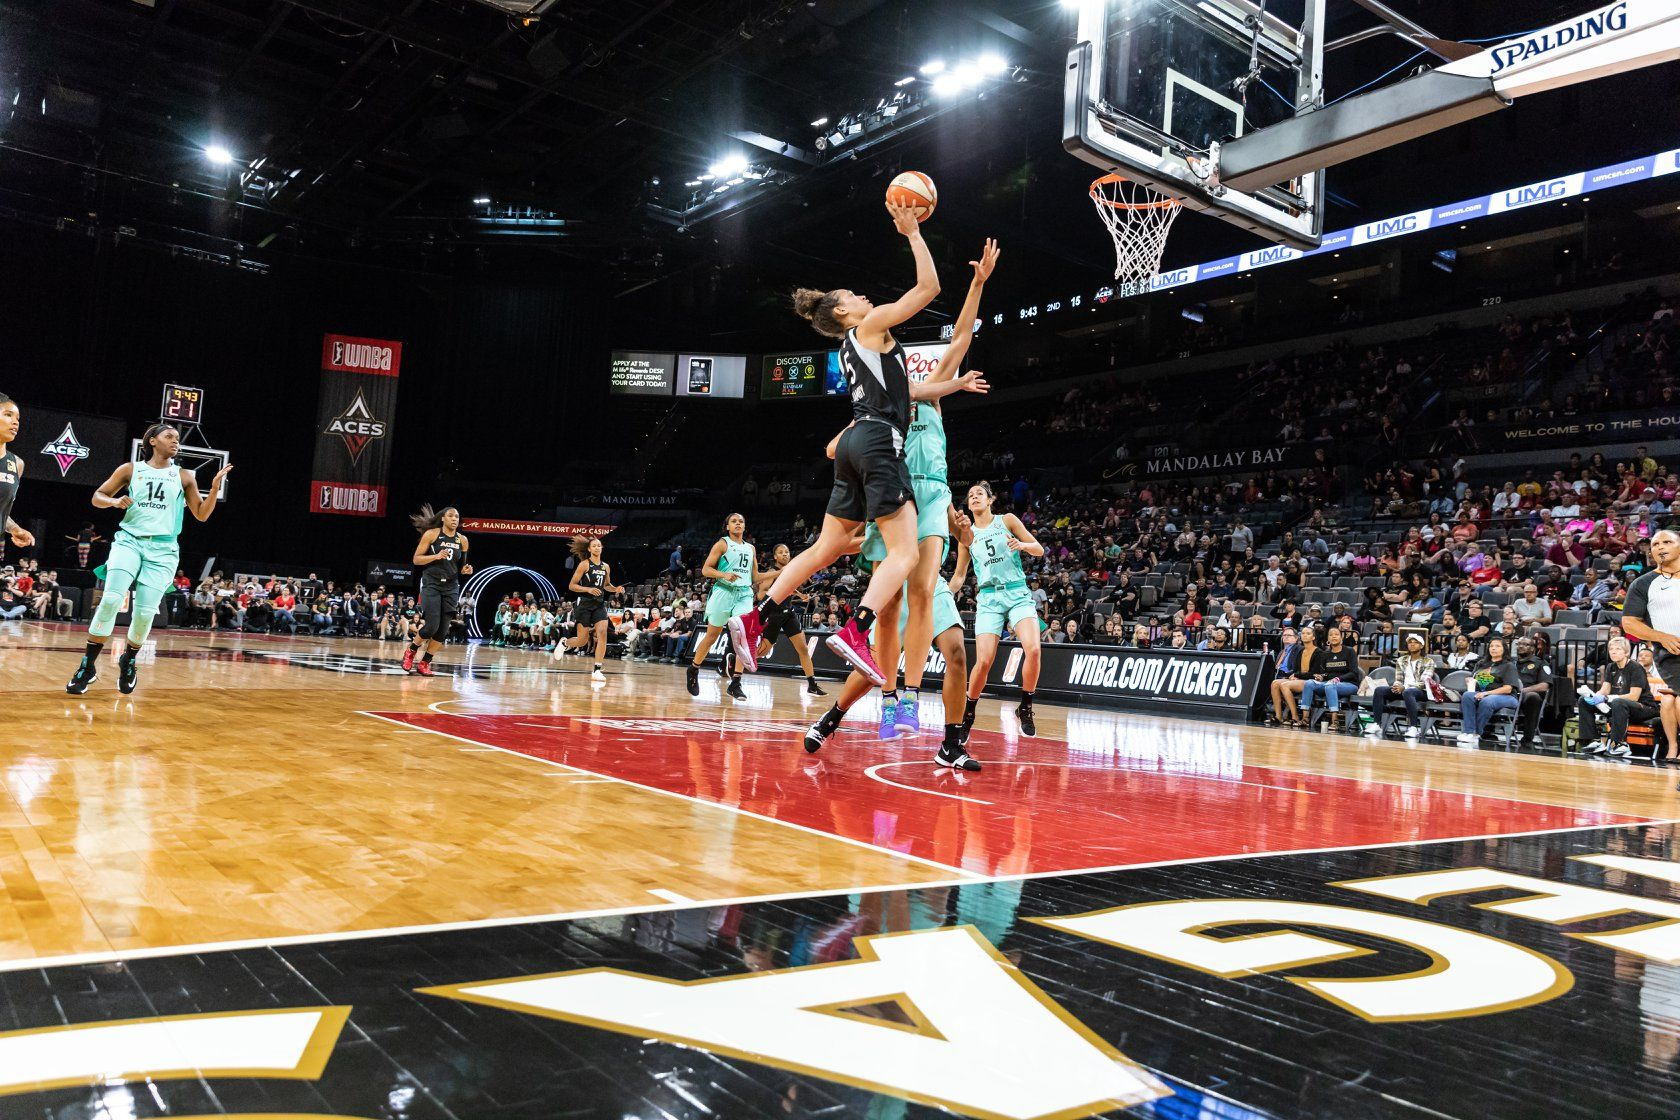 Top Things To Do In Las Vegas In August Cheer On The Las Vegas Aces At The Mandalay Bay Events Center This Summer In Las Vegas Las Vegas Vegas Stuff